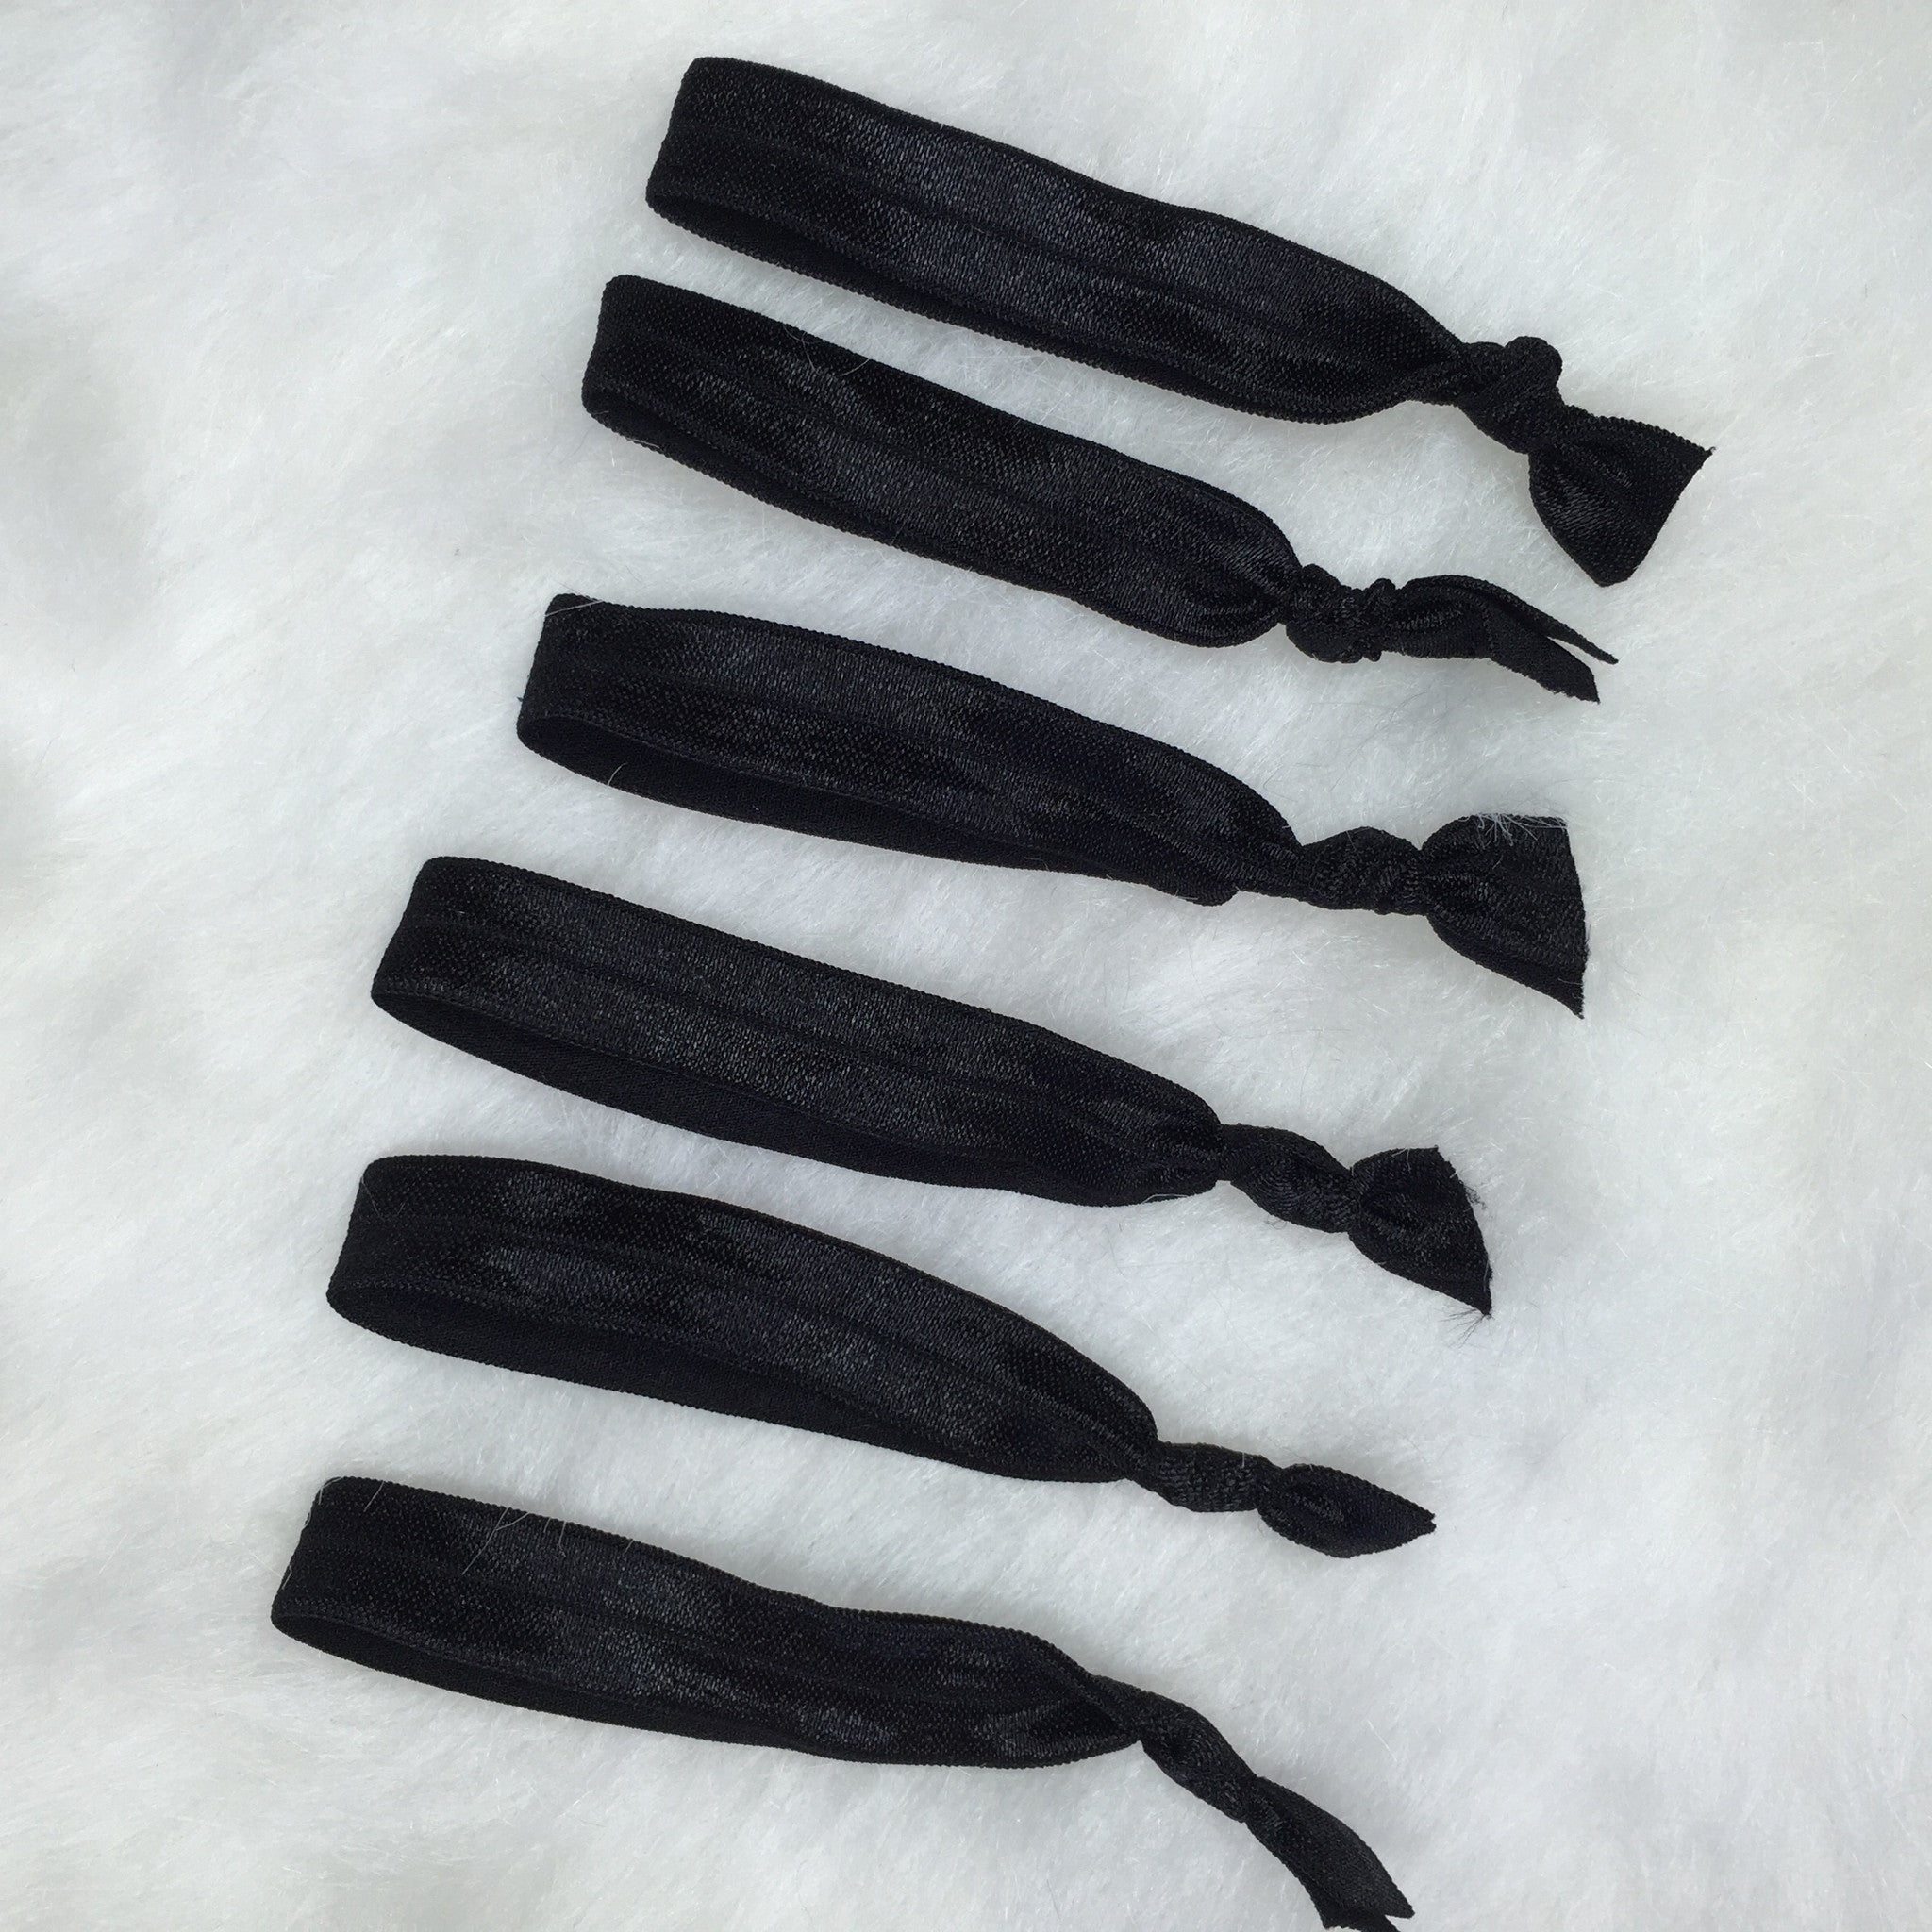 6pk Black Elastic Hair Ties